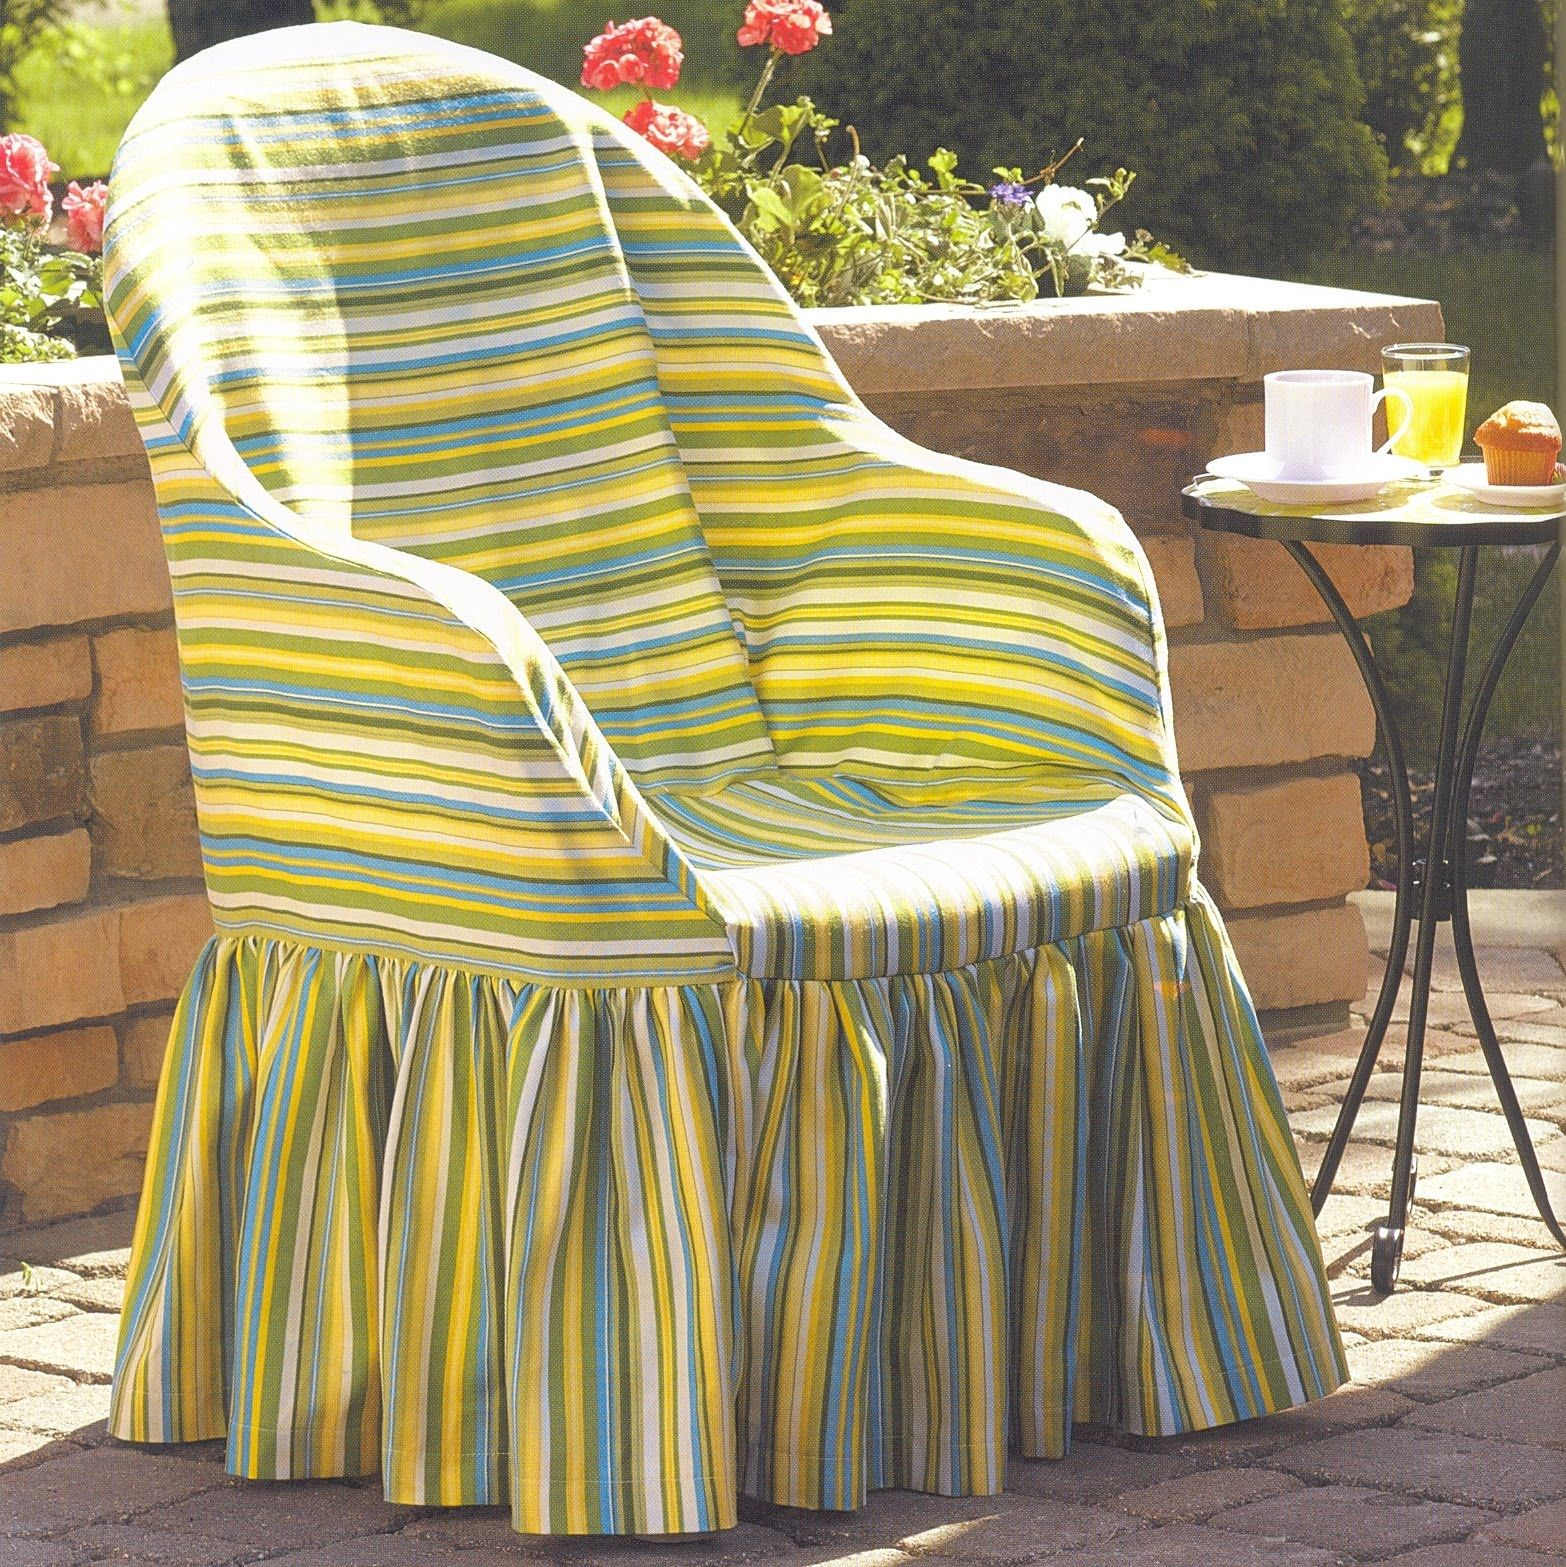 Imagine.. seeing this - instead of a stacking plastic patio chair- garden  furniture slipcover tutorial here.. Barbaridade: BRICOLAGEM - Que tal fazer  o seu ... - Imagine.. Seeing This - Instead Of A Stacking Plastic Patio Chair